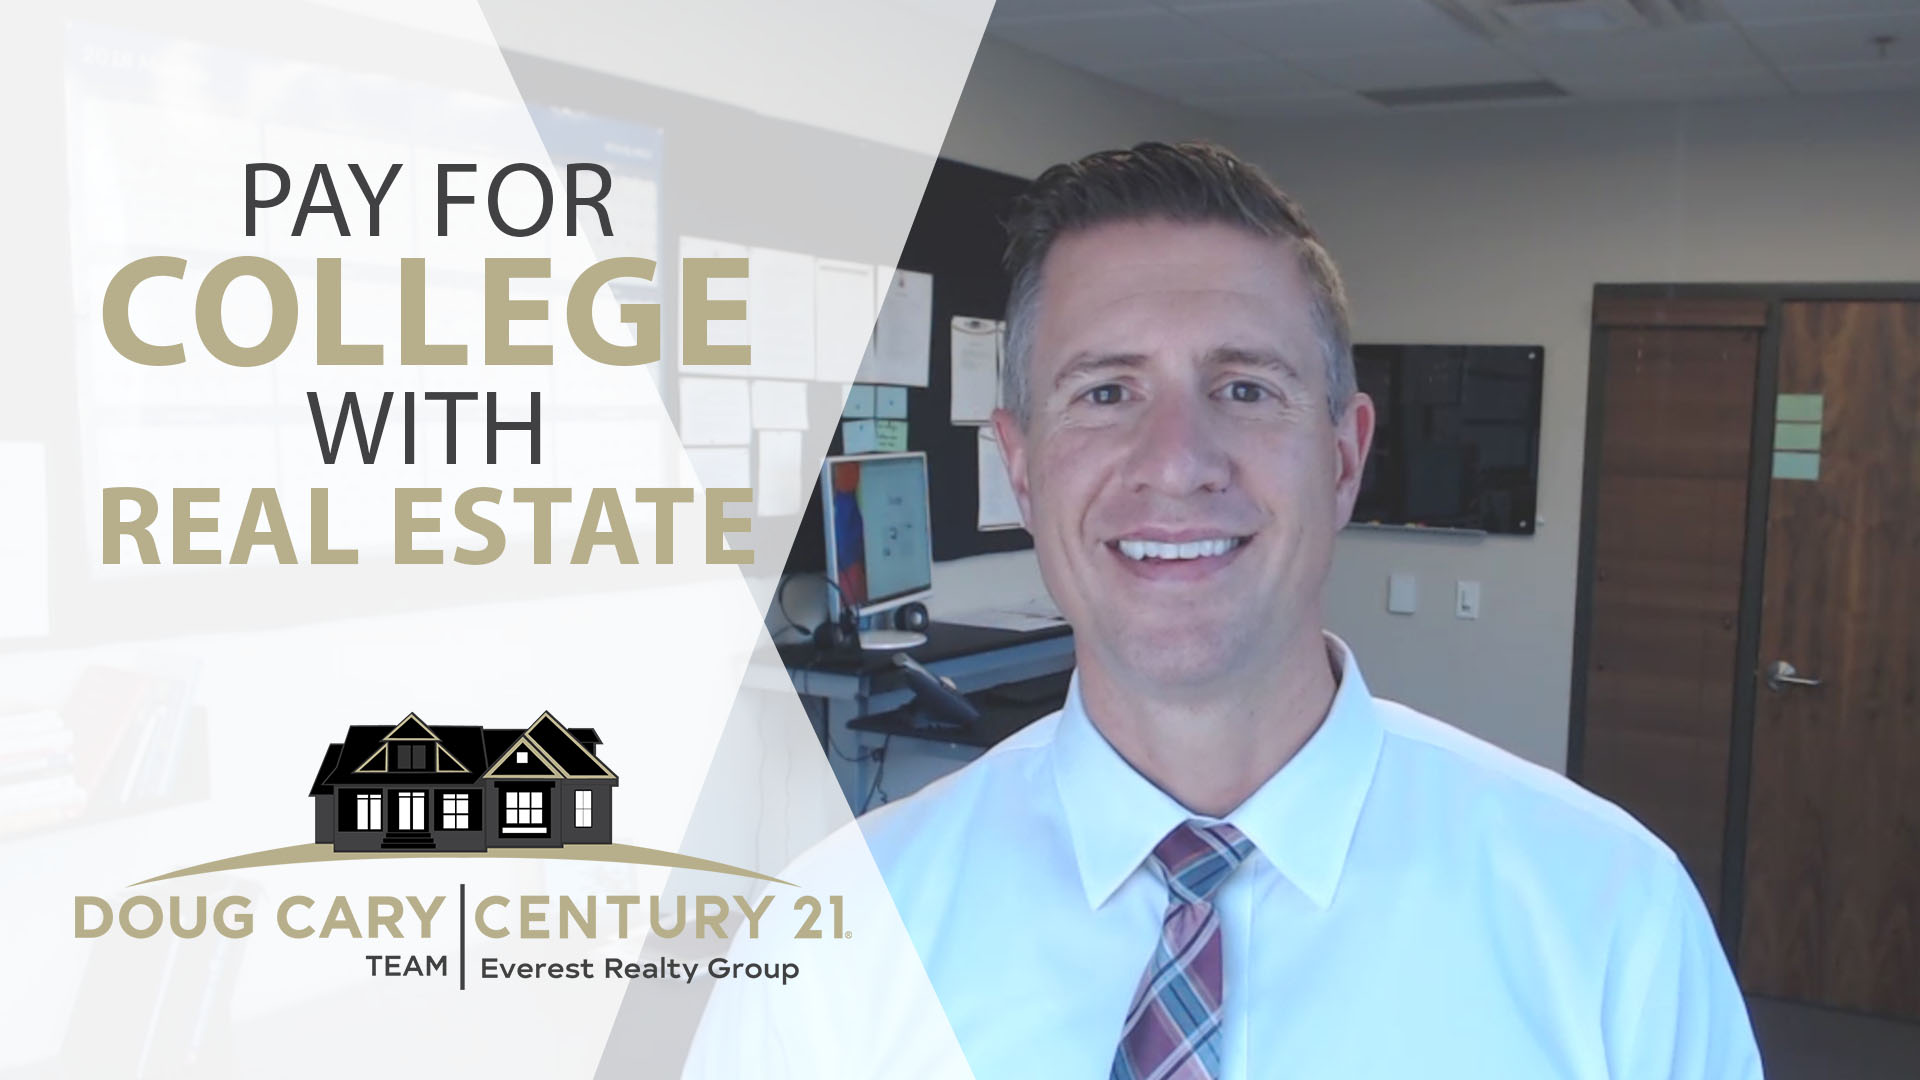 How to Pay for College Tuition With Real Estate